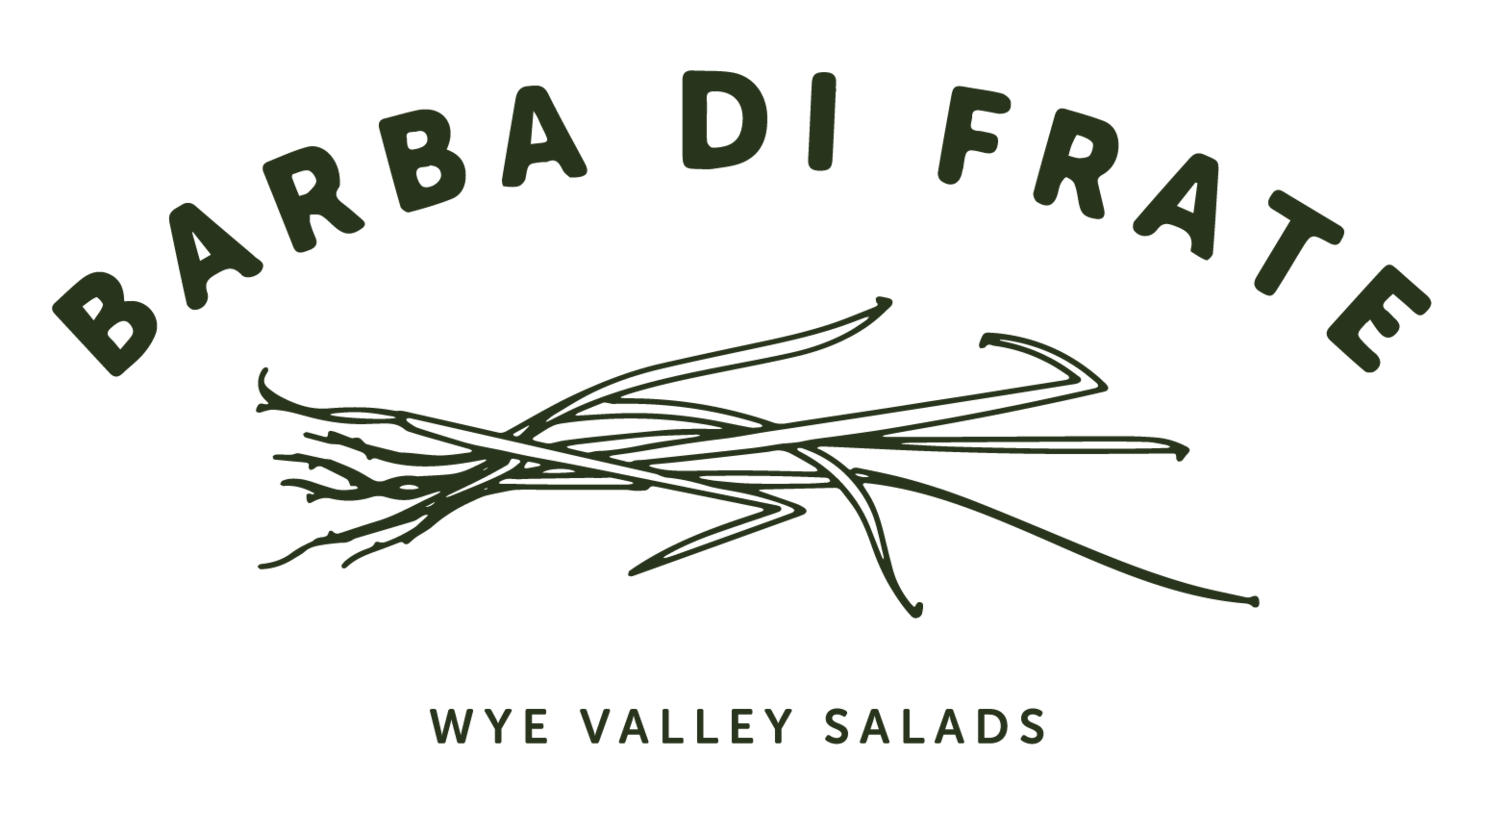 Wye Valley Salads